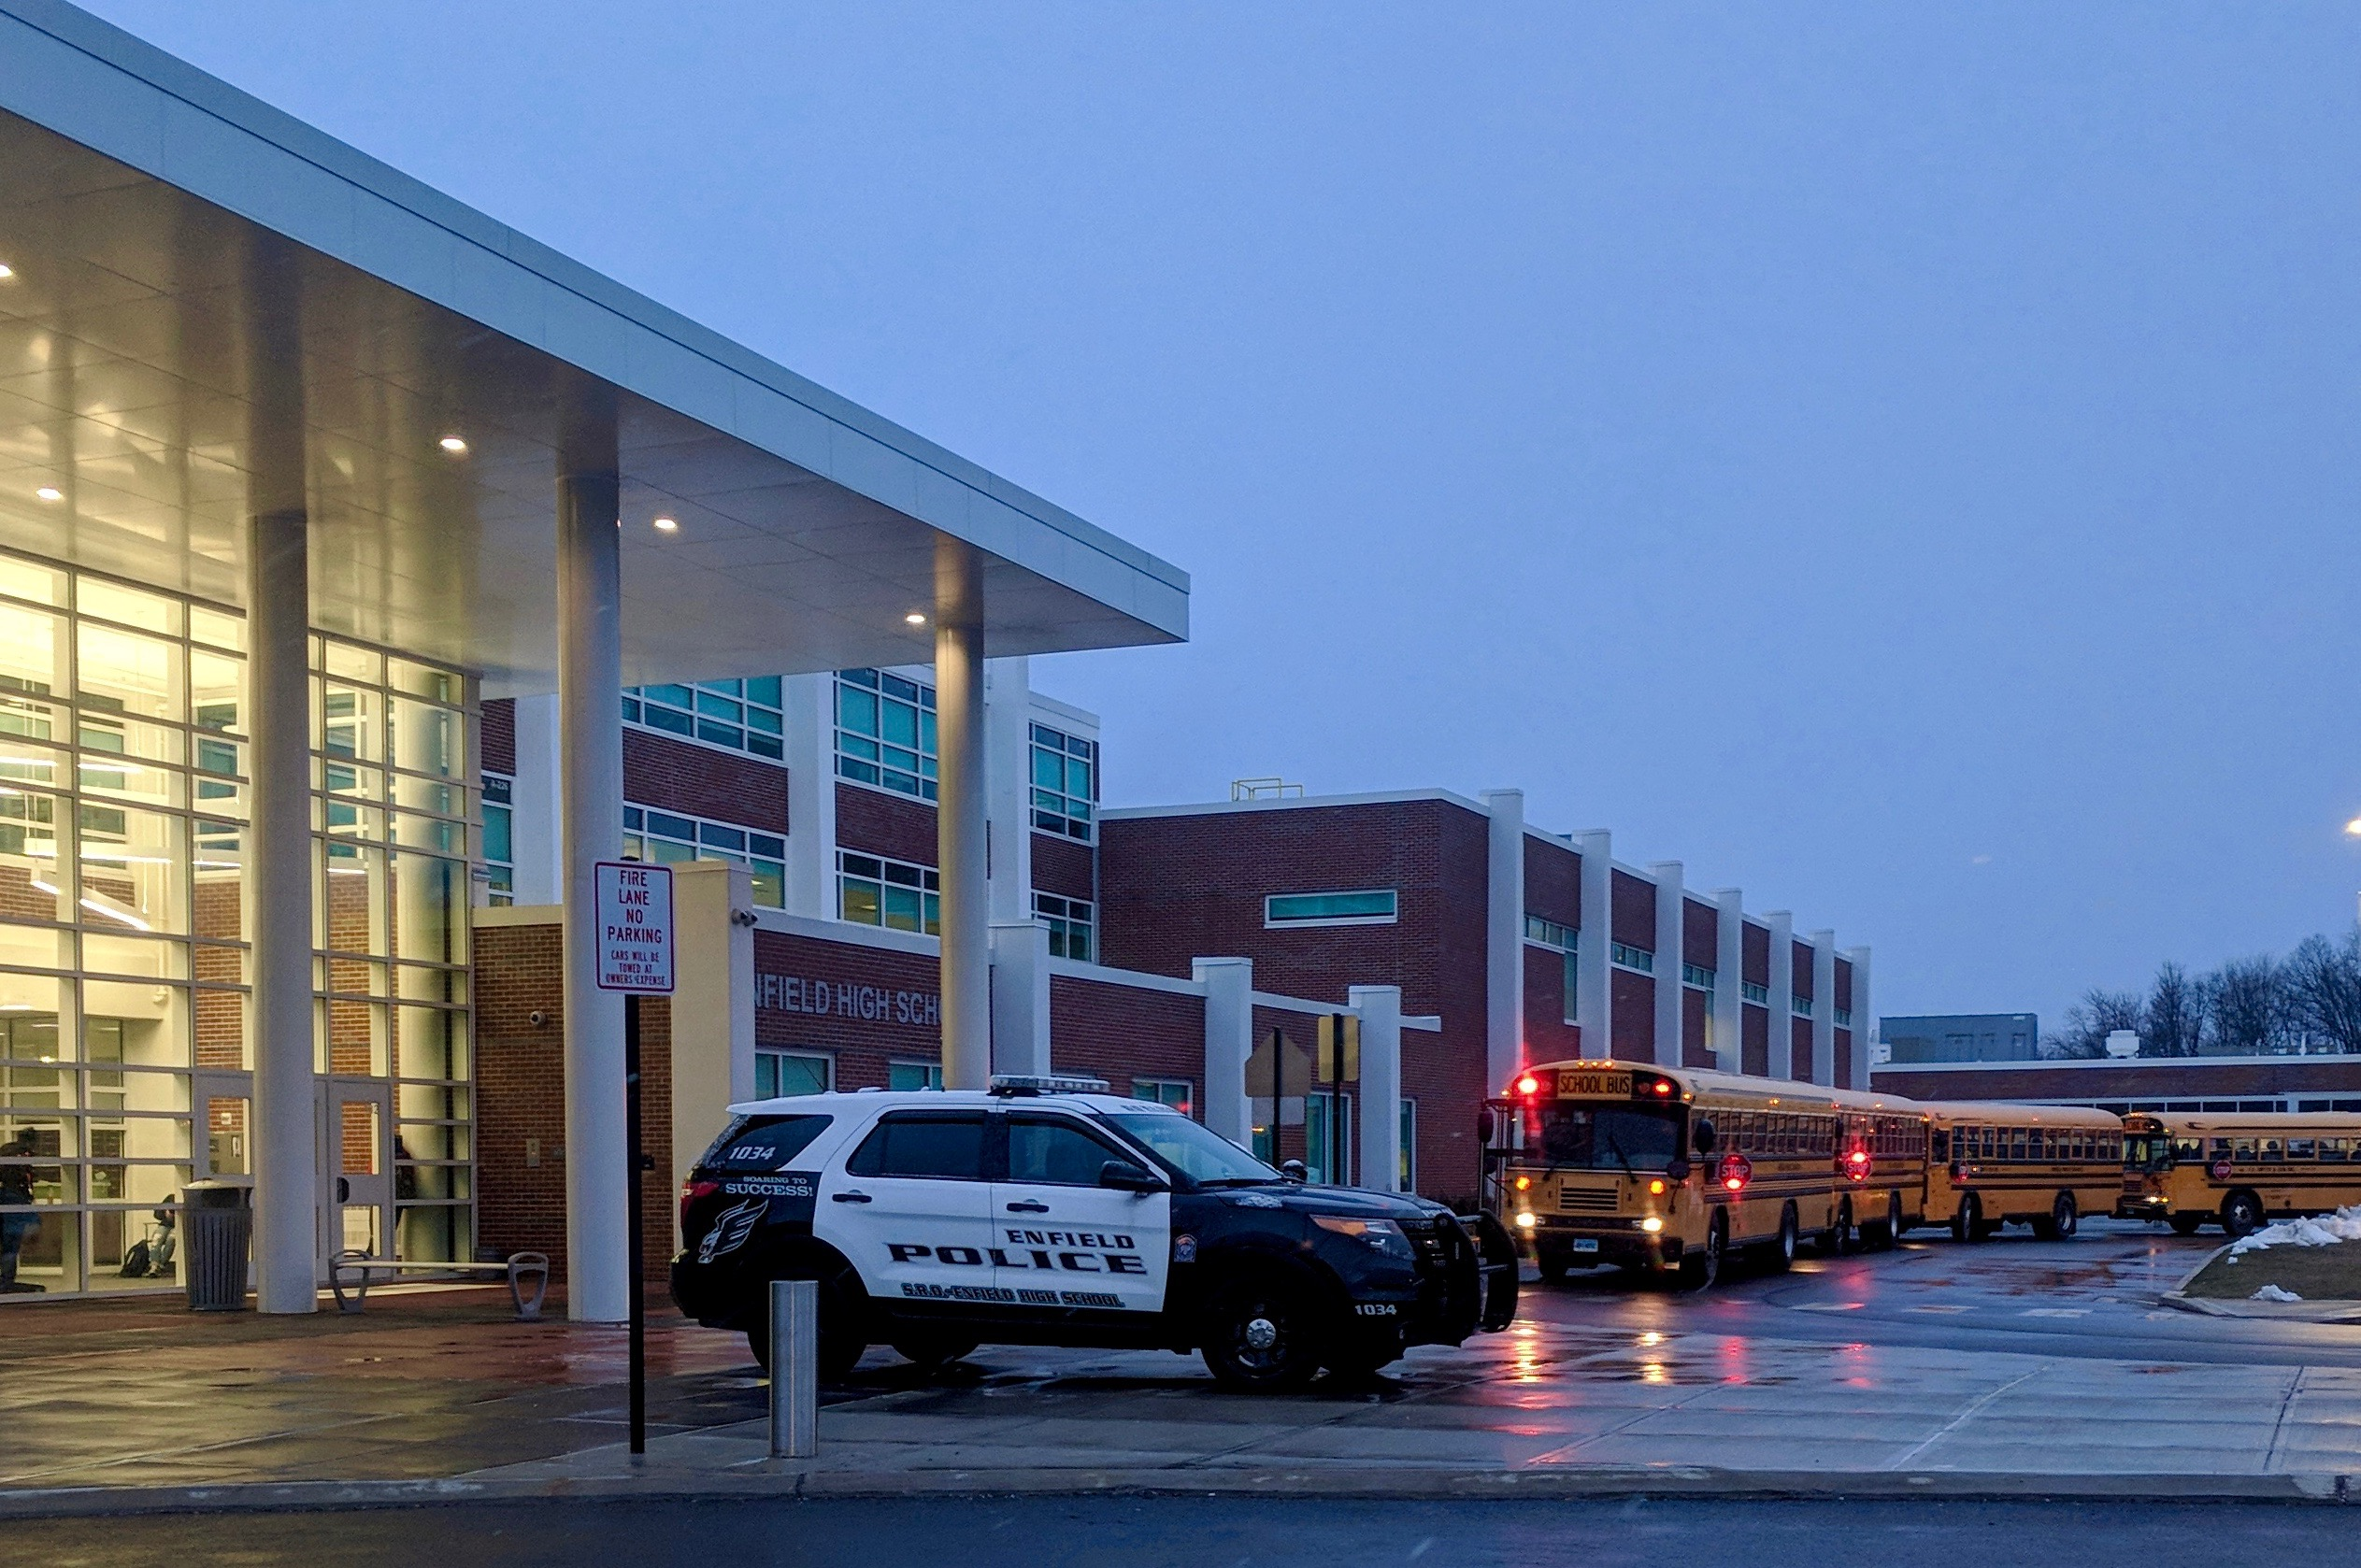 How one school district tackled assaults on teachers